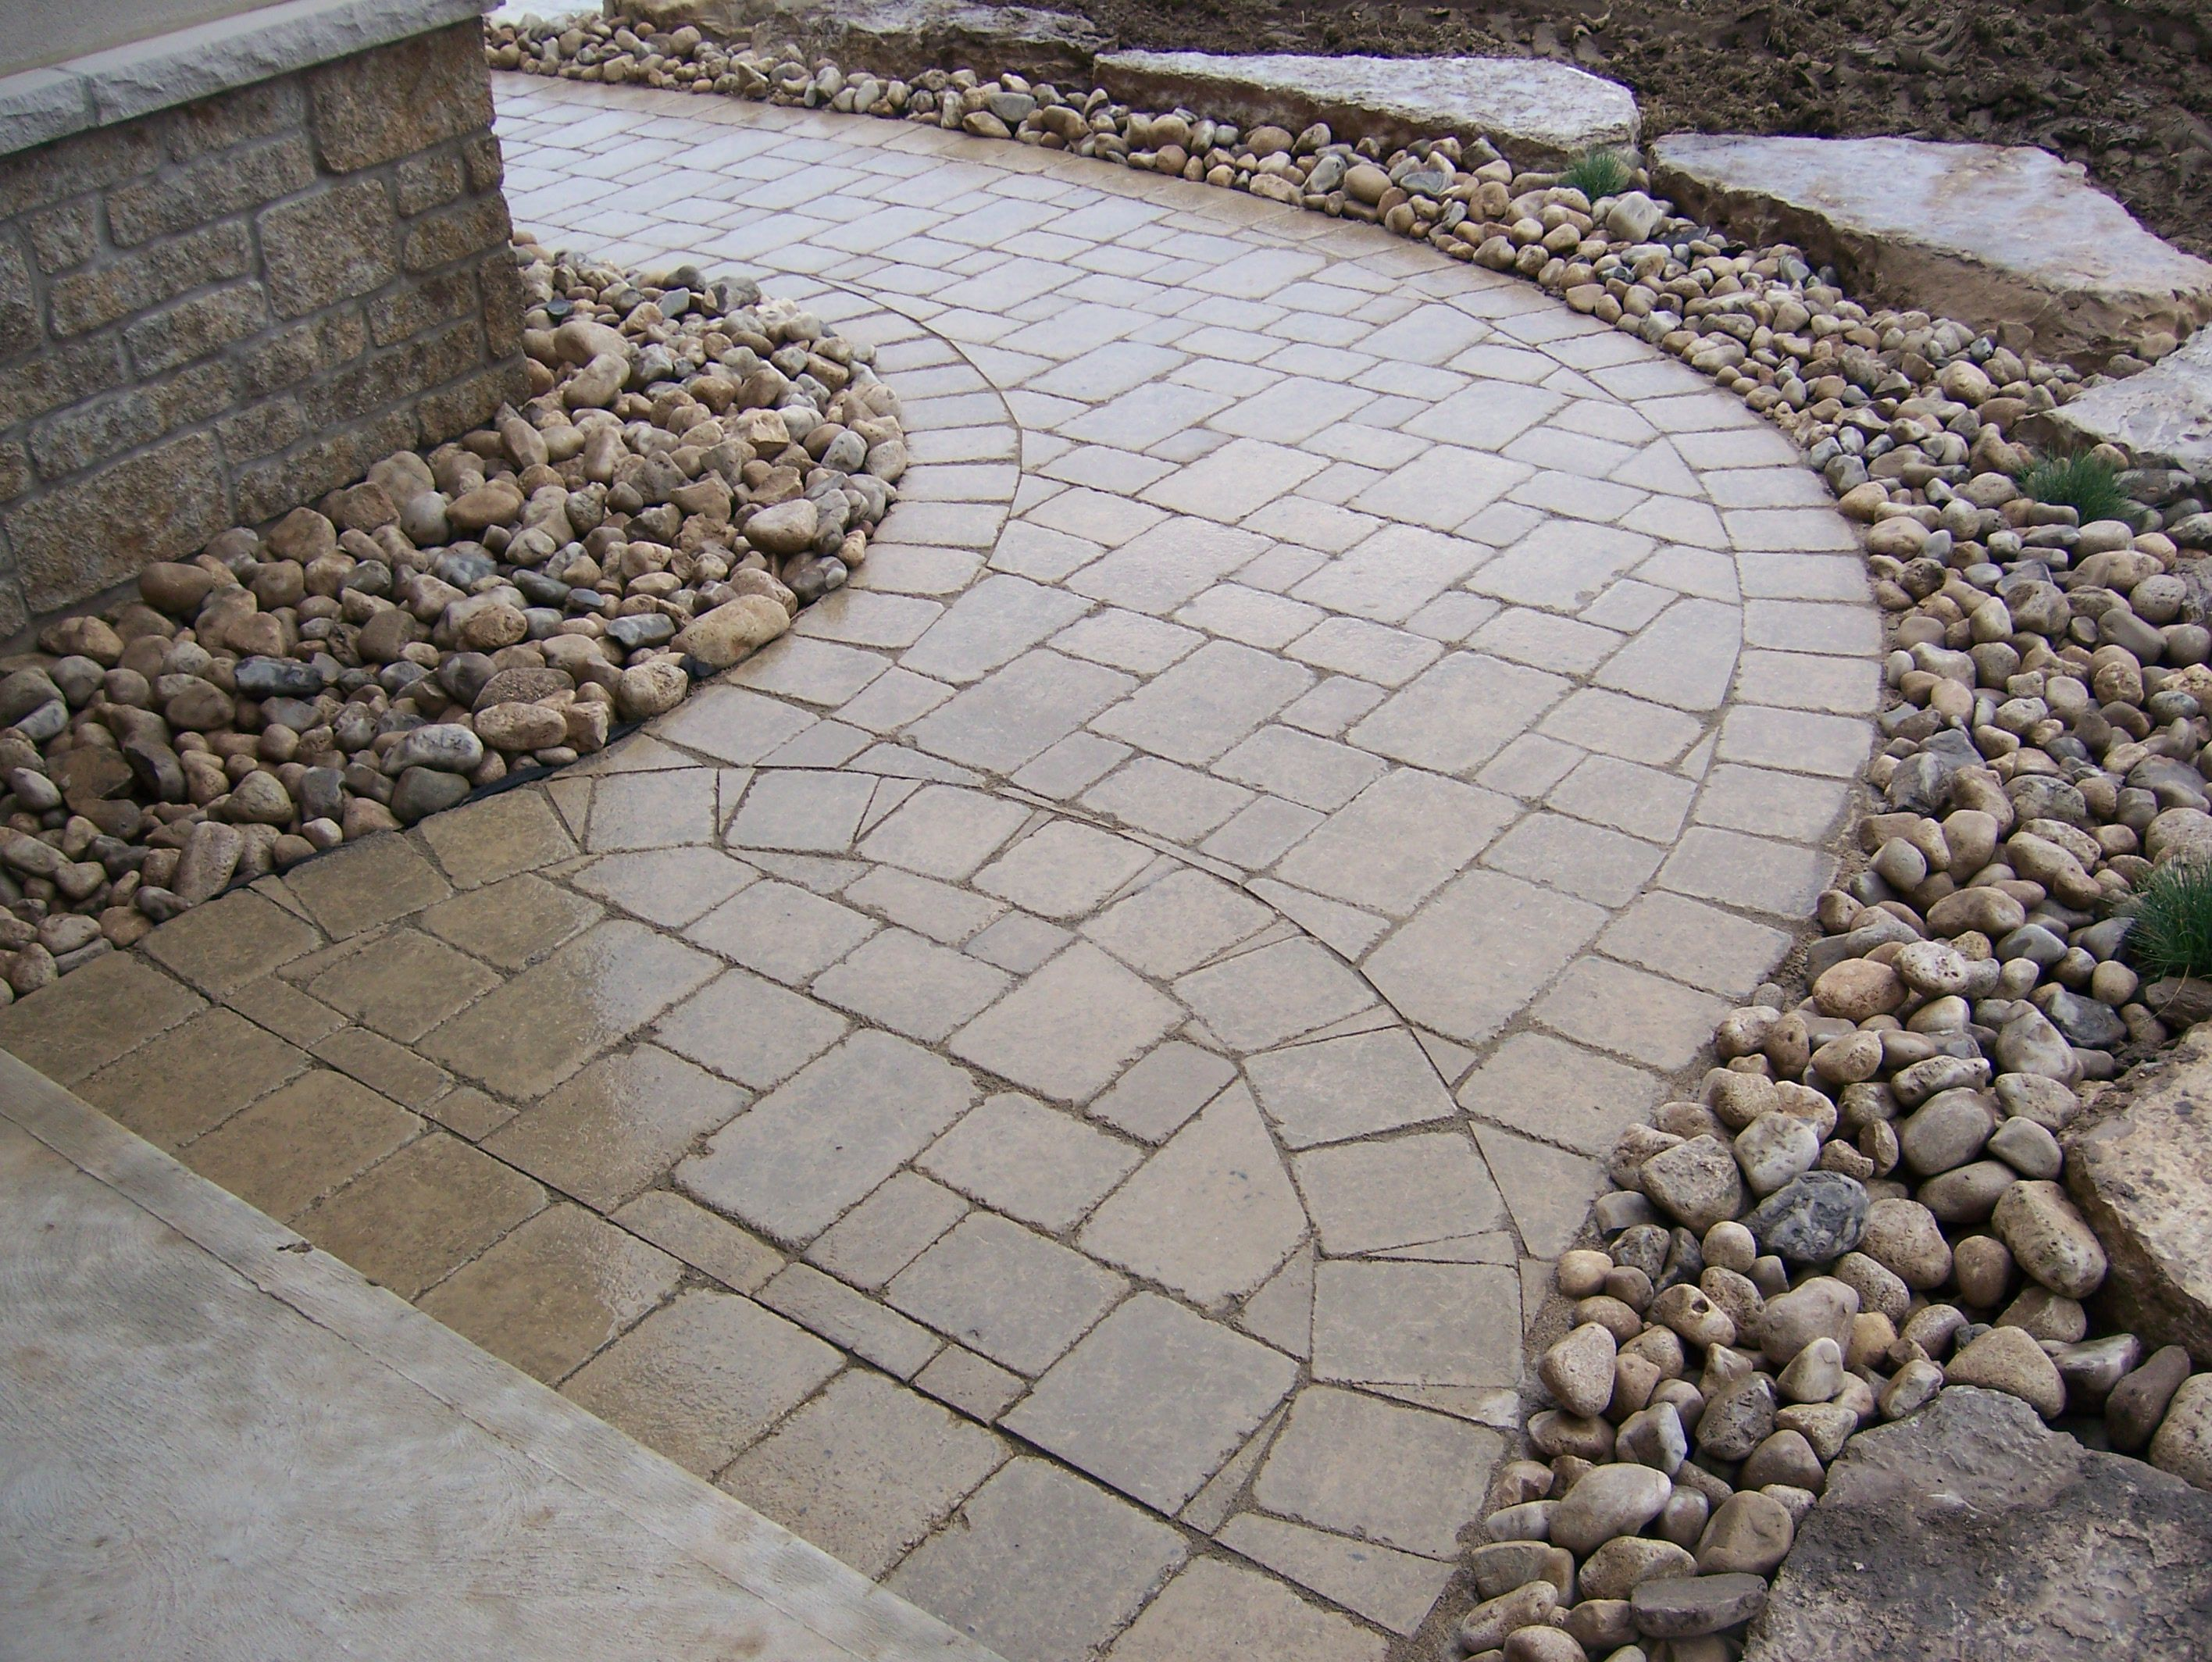 interlocking brickpathway interlocking brickpathway Backyard ideas